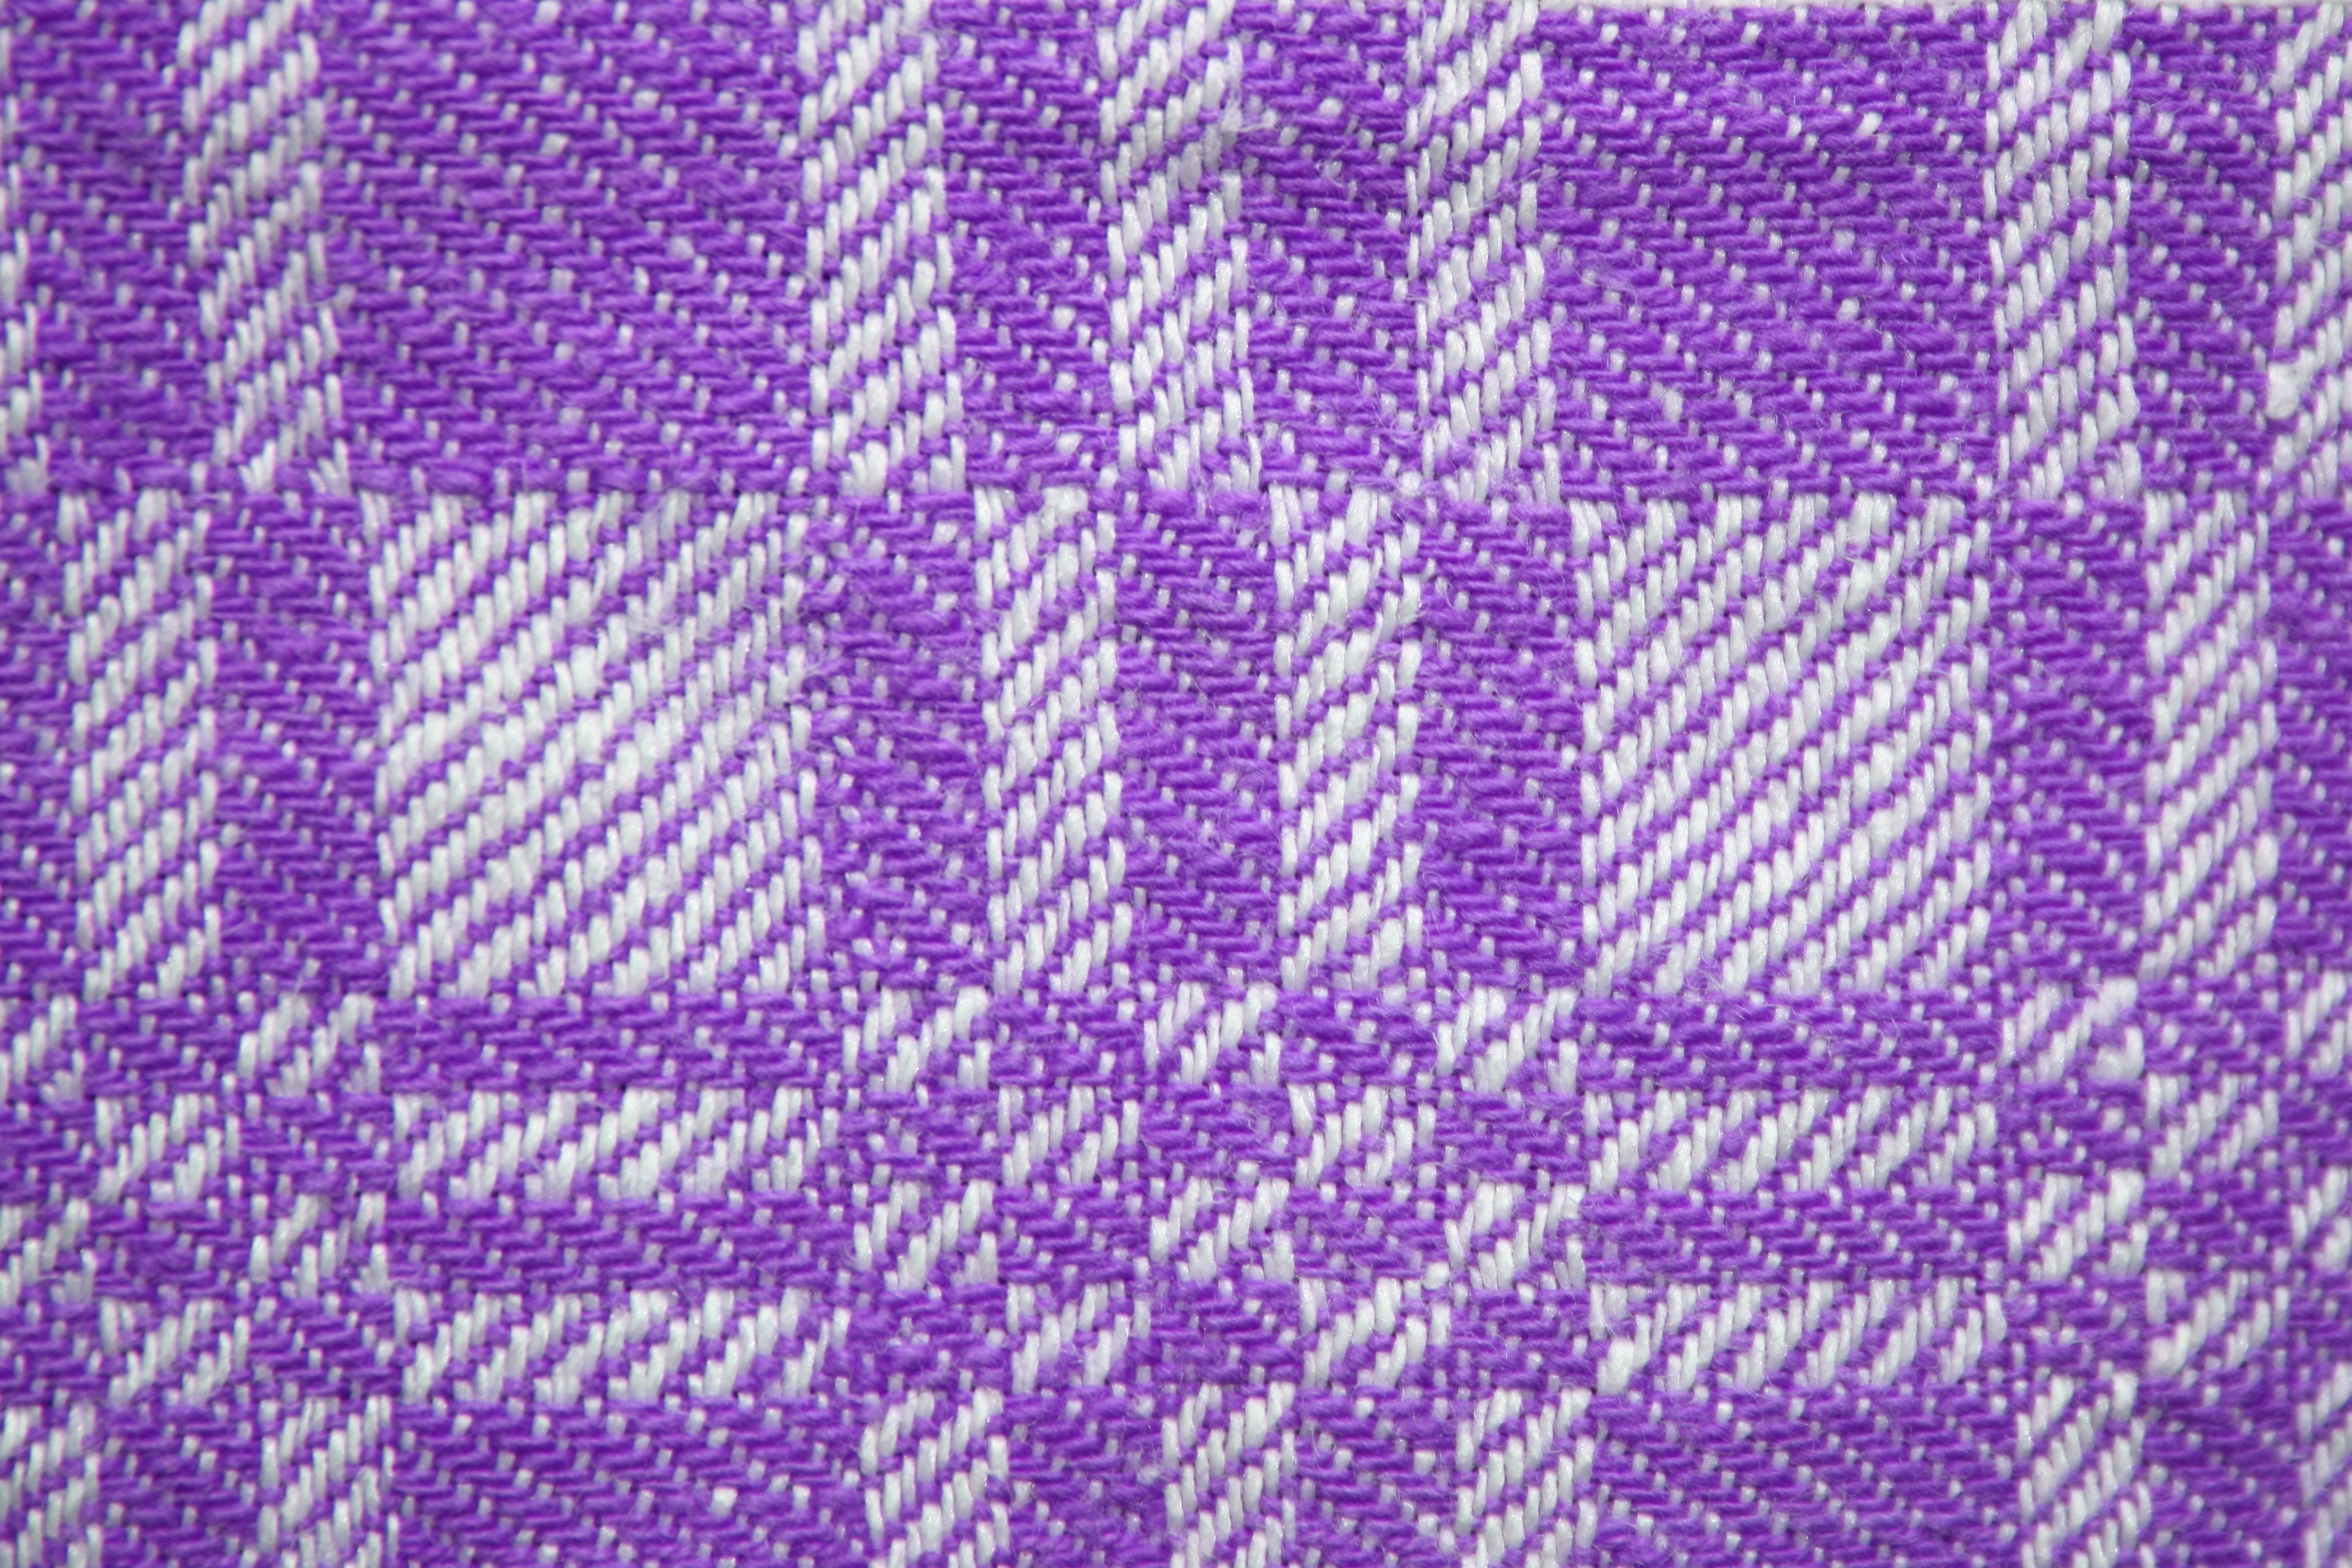 Purple And White Woven Fabric Texture With Squares Pattern